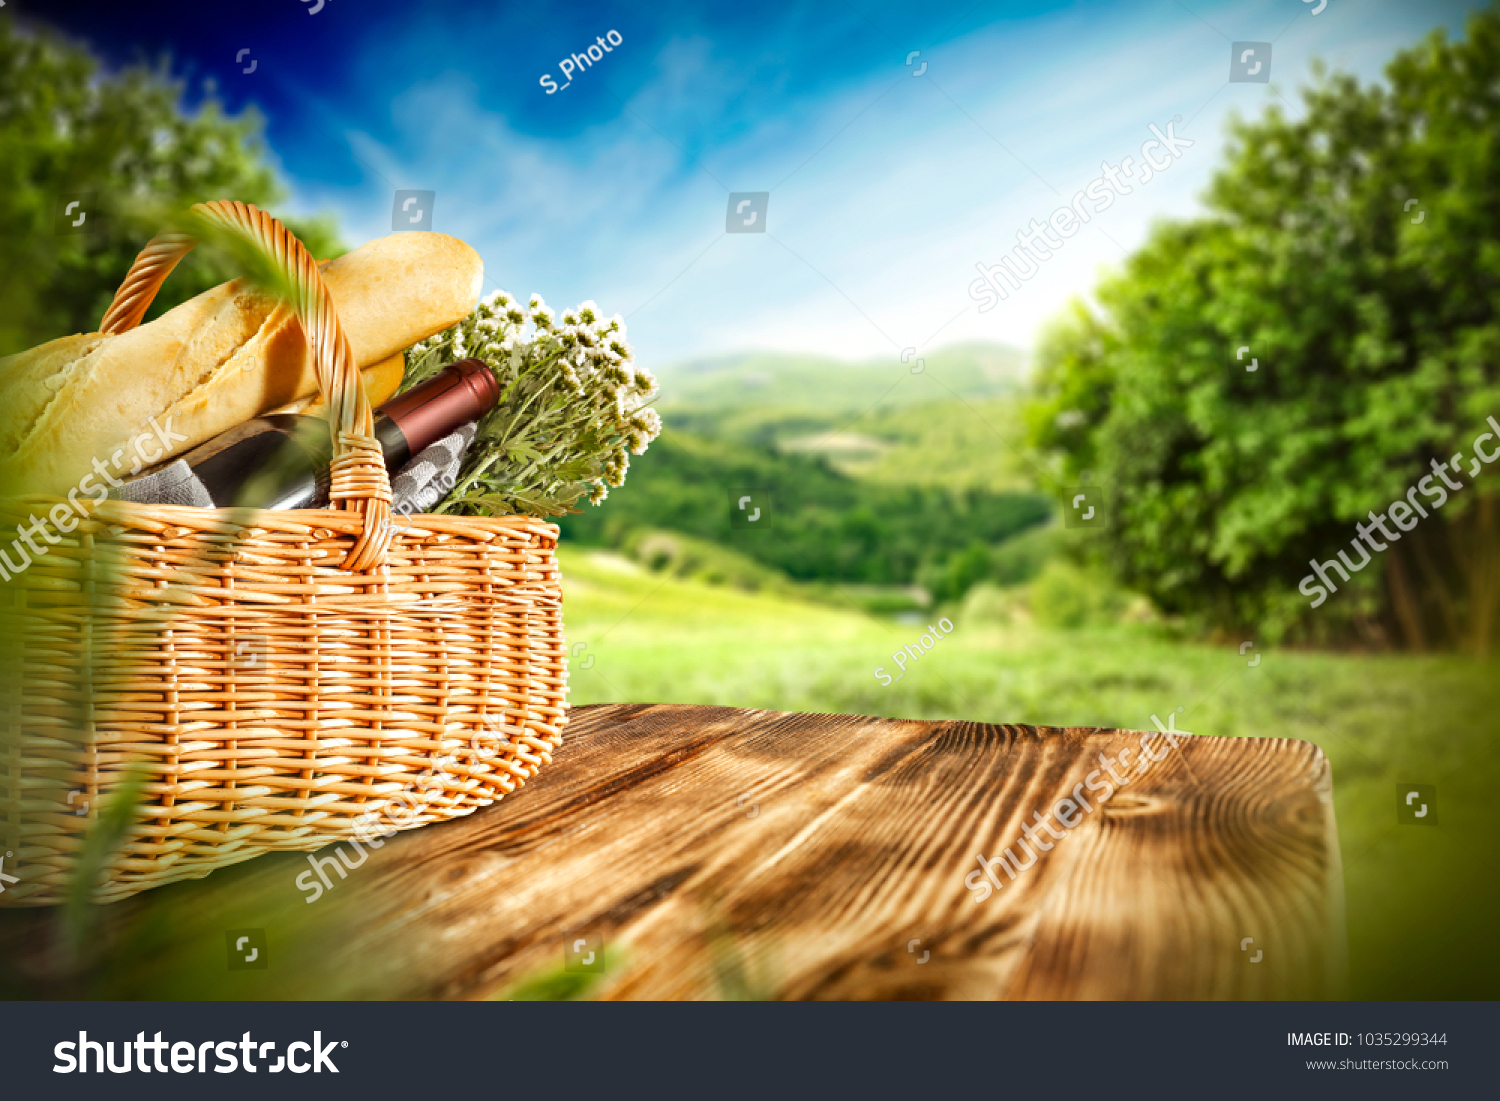 Picnic Basket On Wooden Table Free Stock Photo Edit Now 1035299344